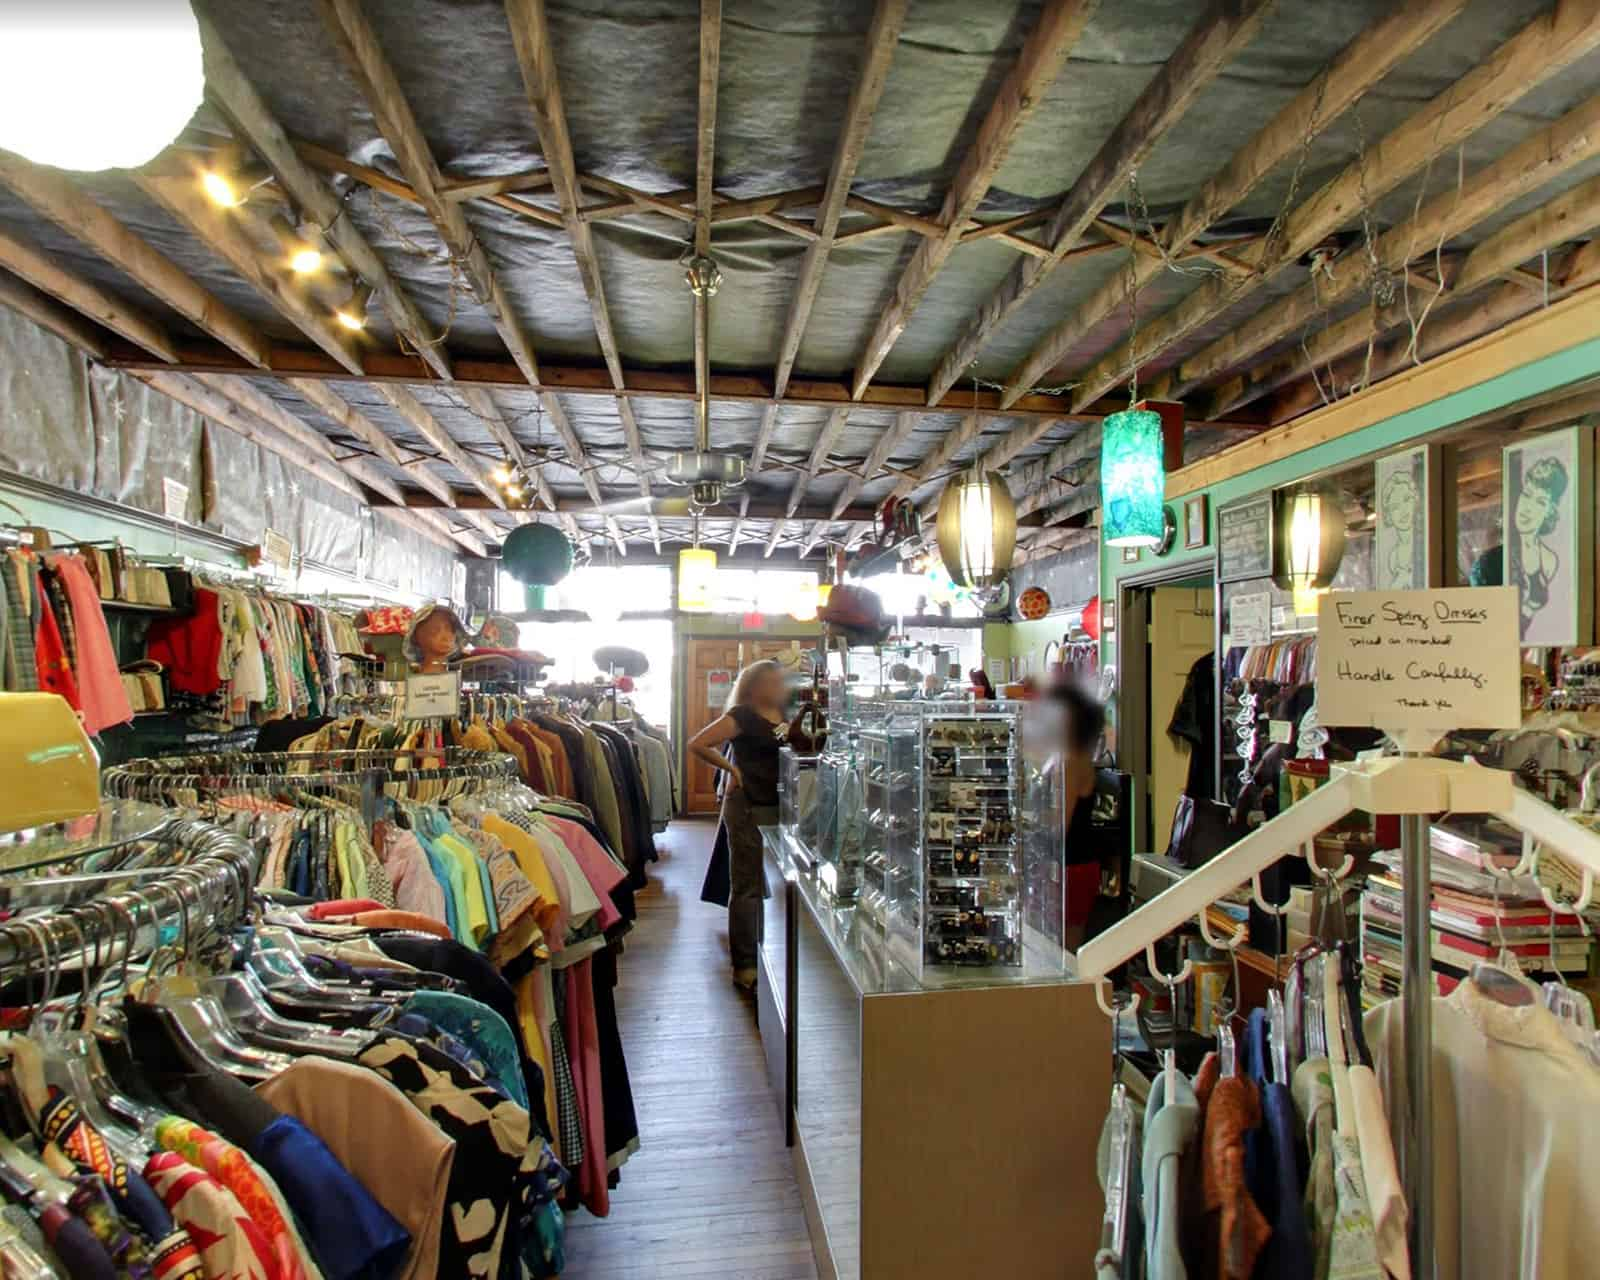 Inside Hip Zipper Vintage store Nashville TN